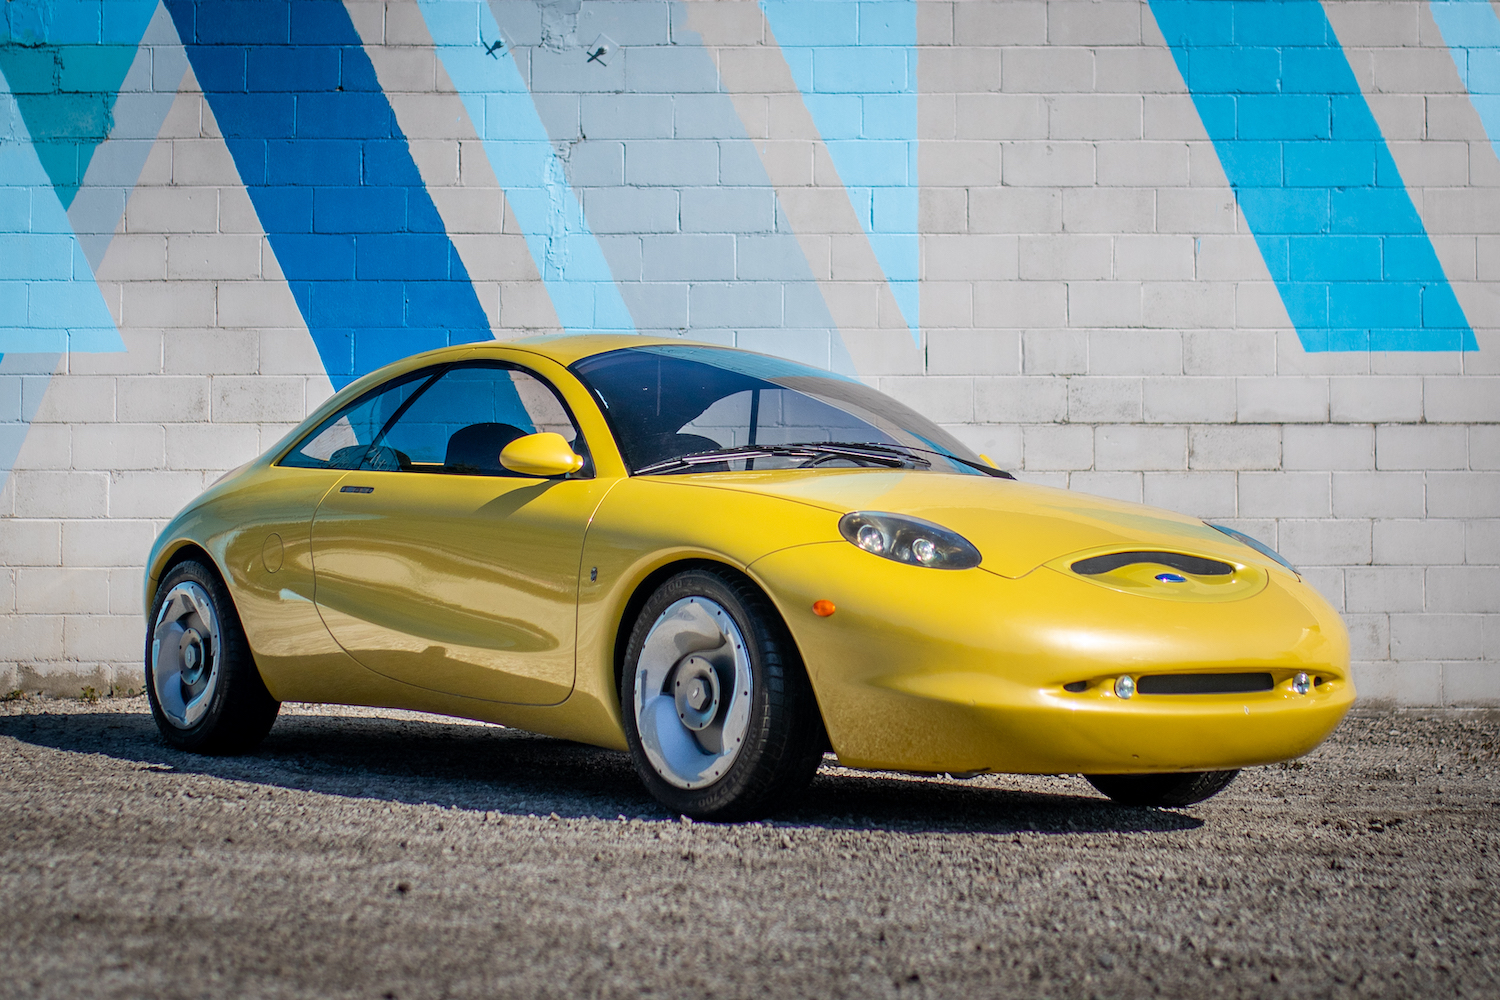 Ever dreamed of owning a concept? This '90s Ford show car might spark your desire